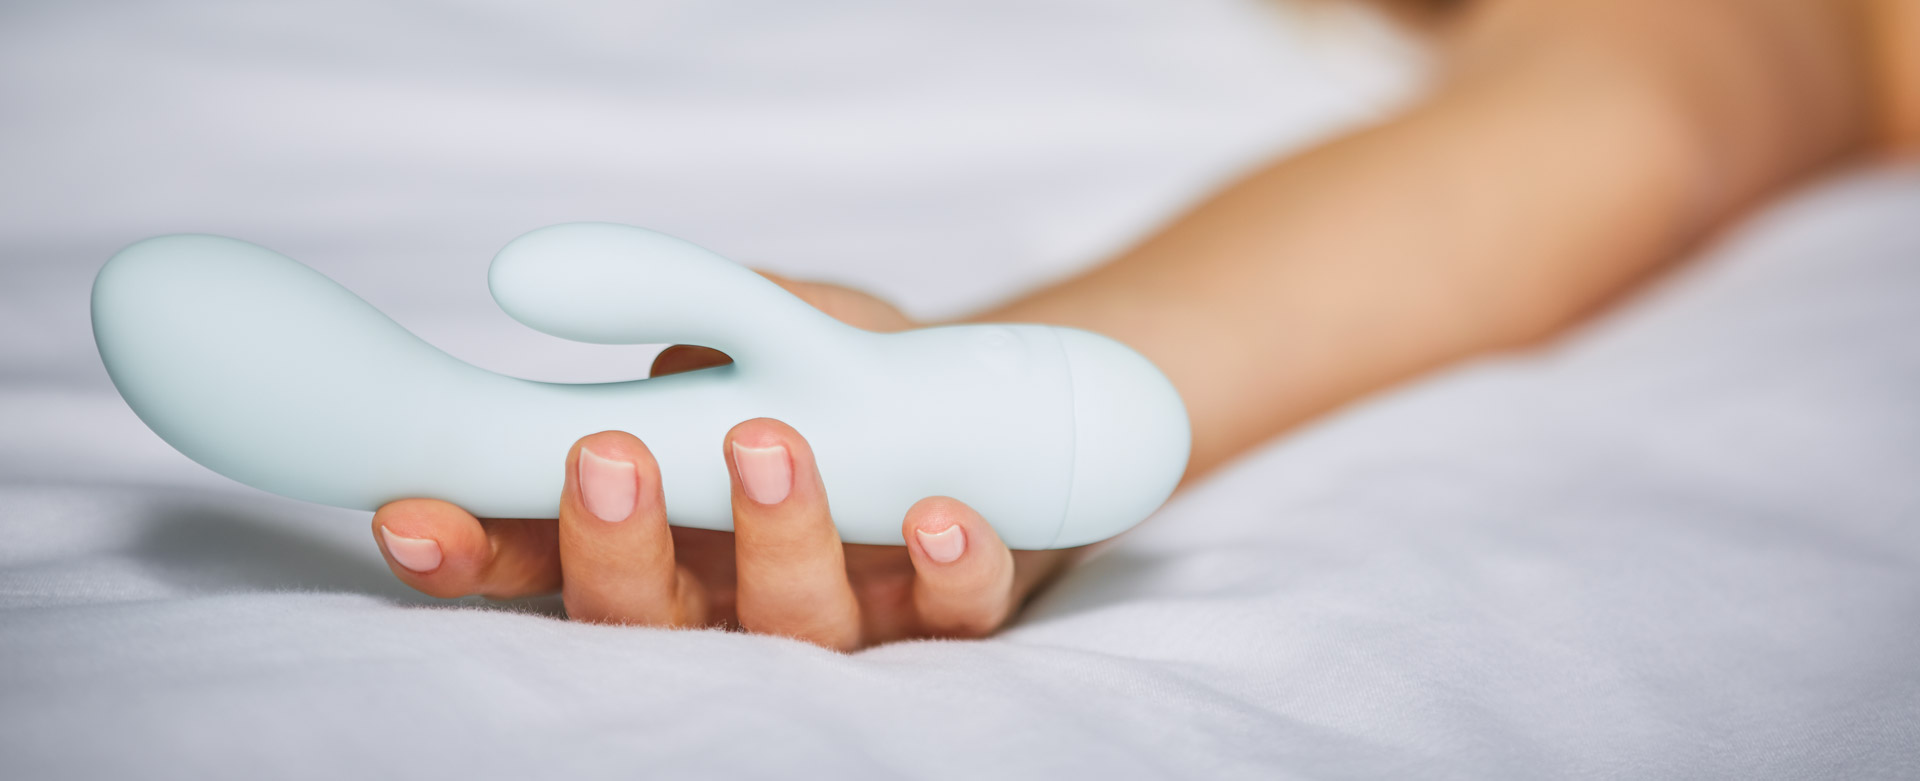 woman holding rabbit vibrator lying on bed